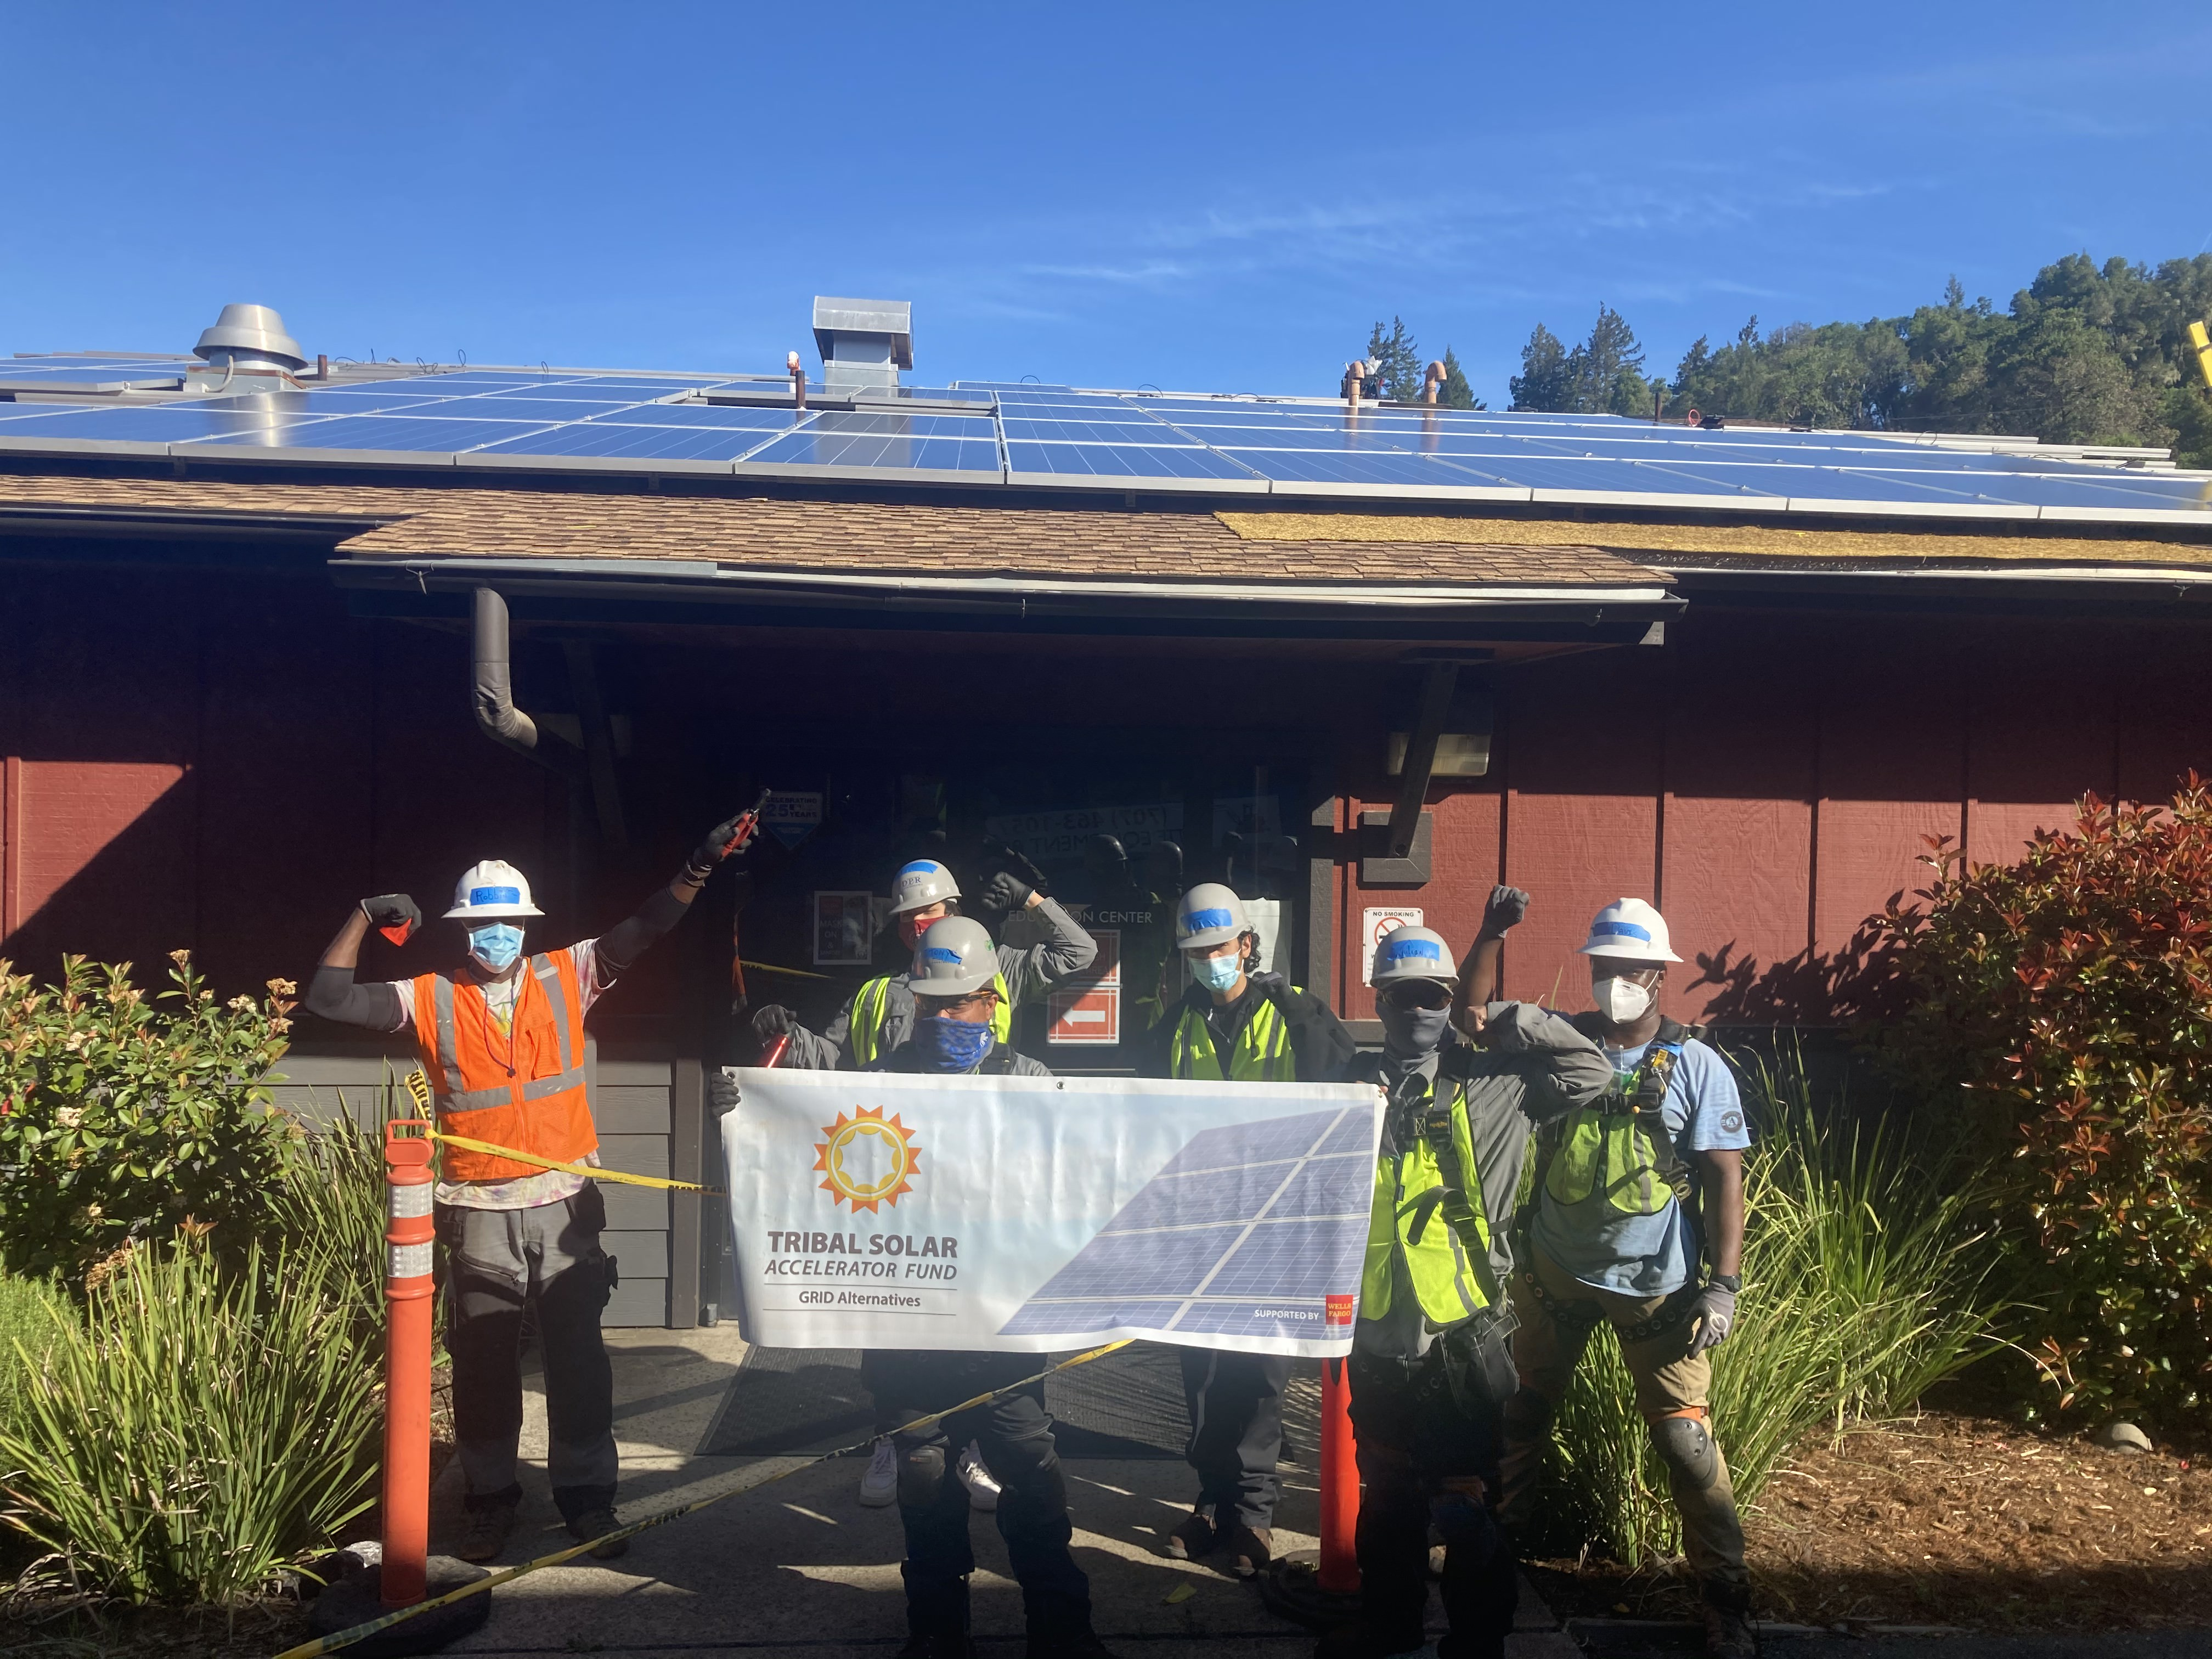 Coyote Valley trainees with GRID banner